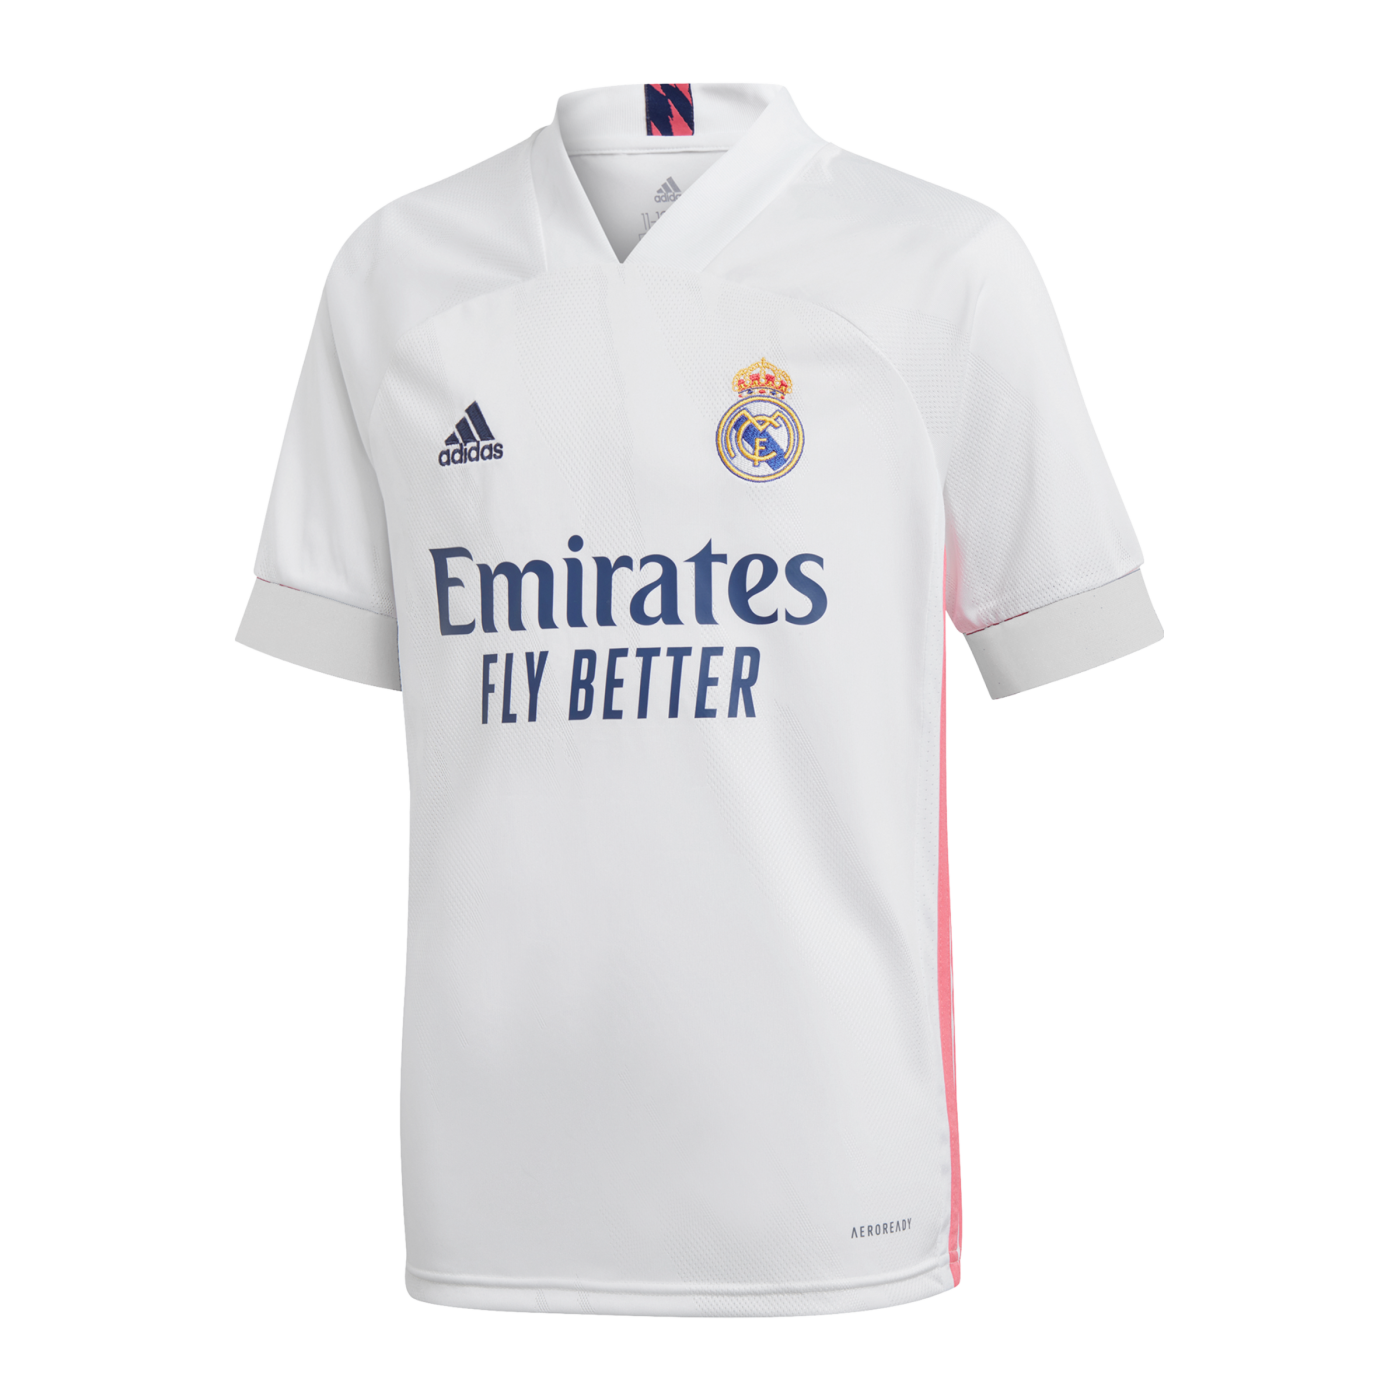 Adidas Real Madrid Trikot Home 2020 2021 Weiss Jersey Replica